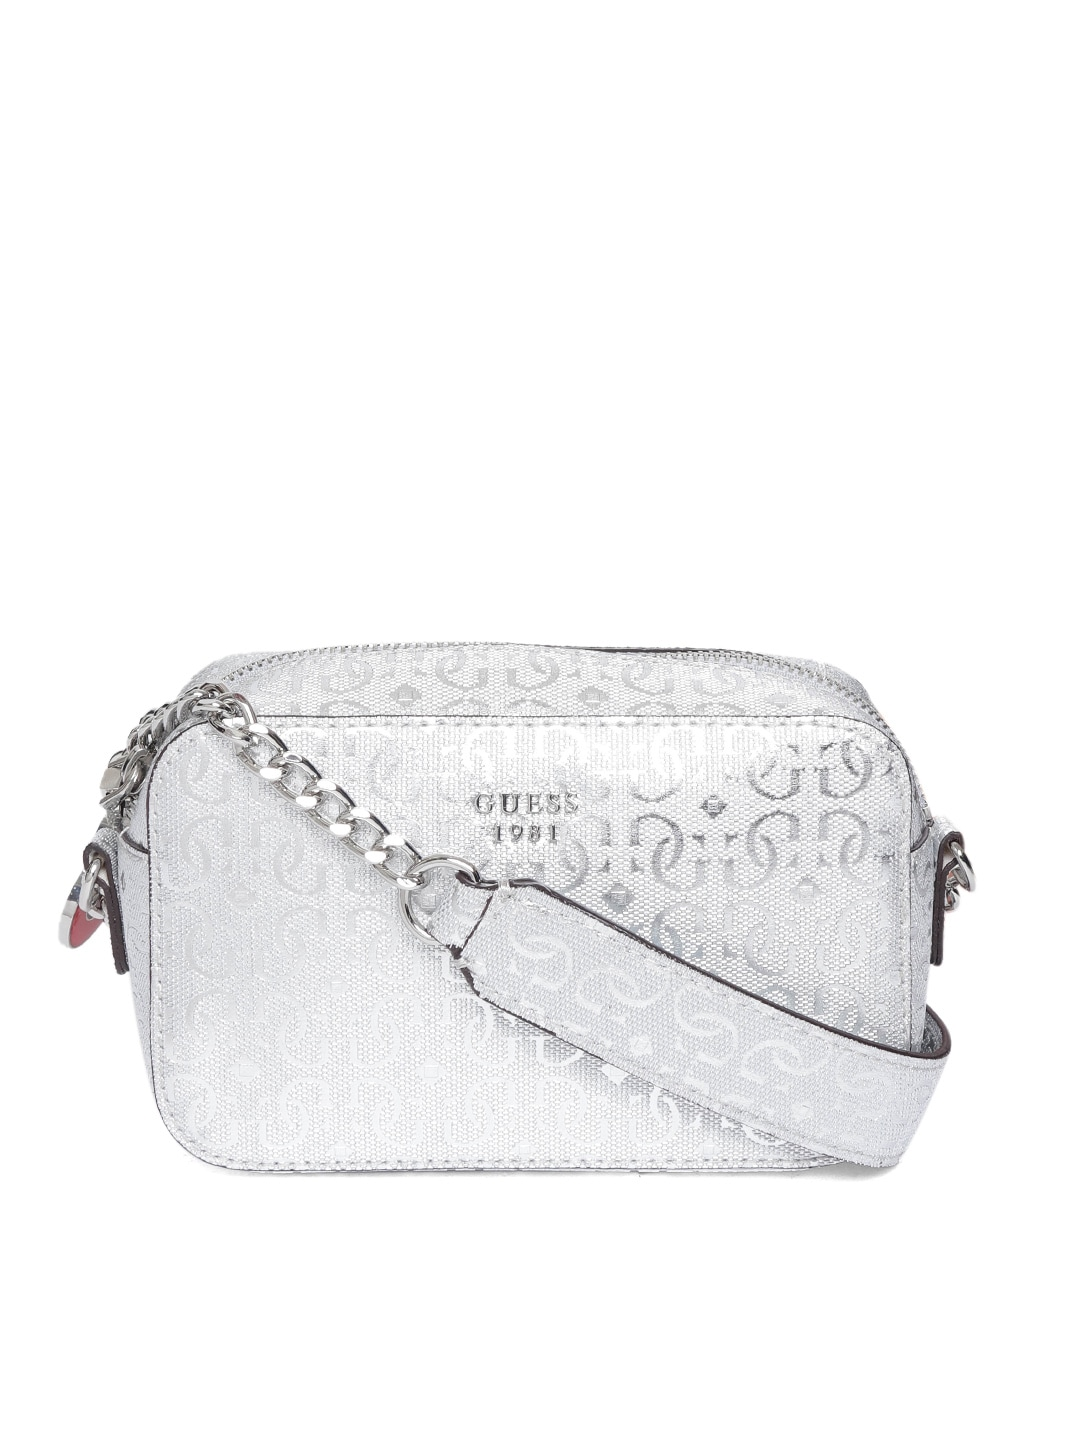 GUESS Silver-Toned Textured Sling Bag